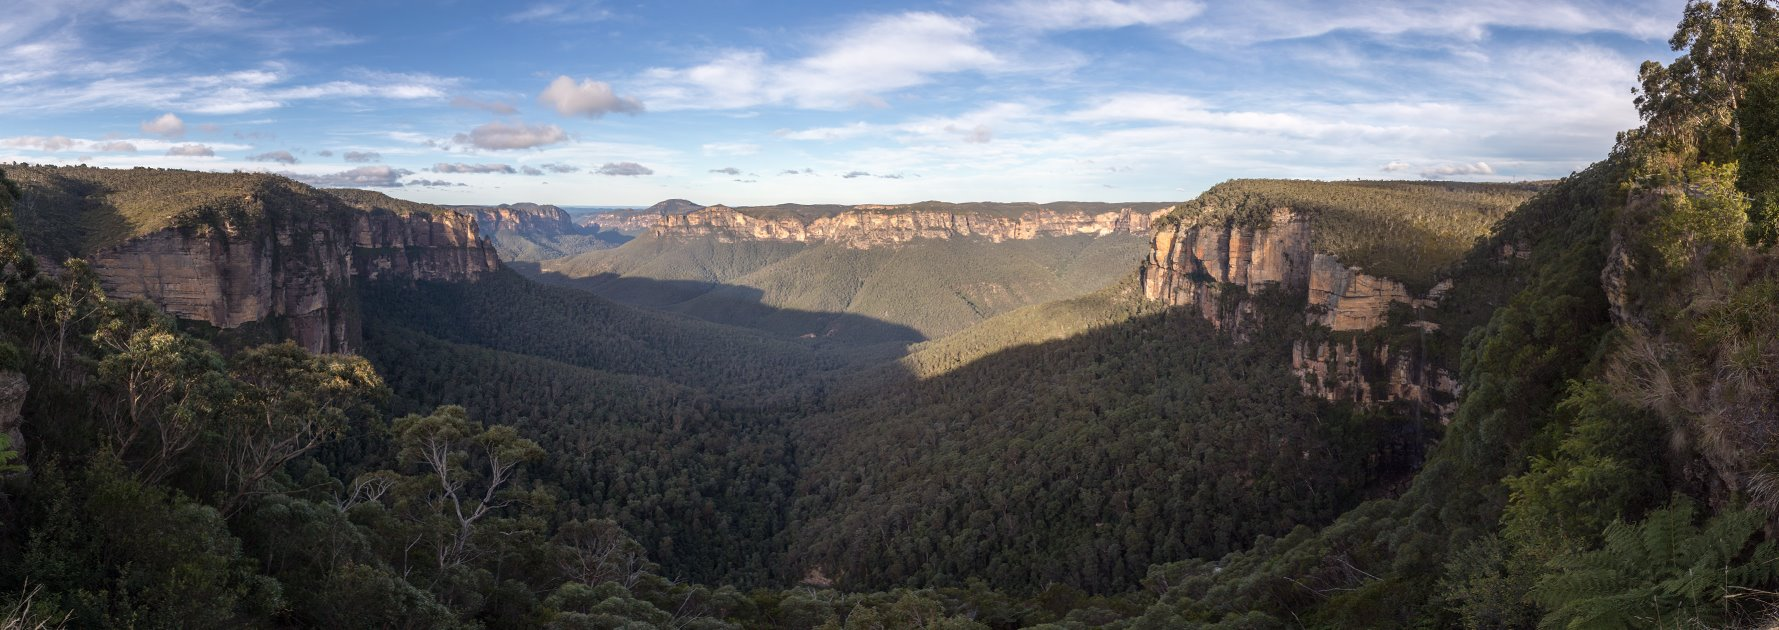 Panoramaaufnahme in den Blue Mountains in Australien